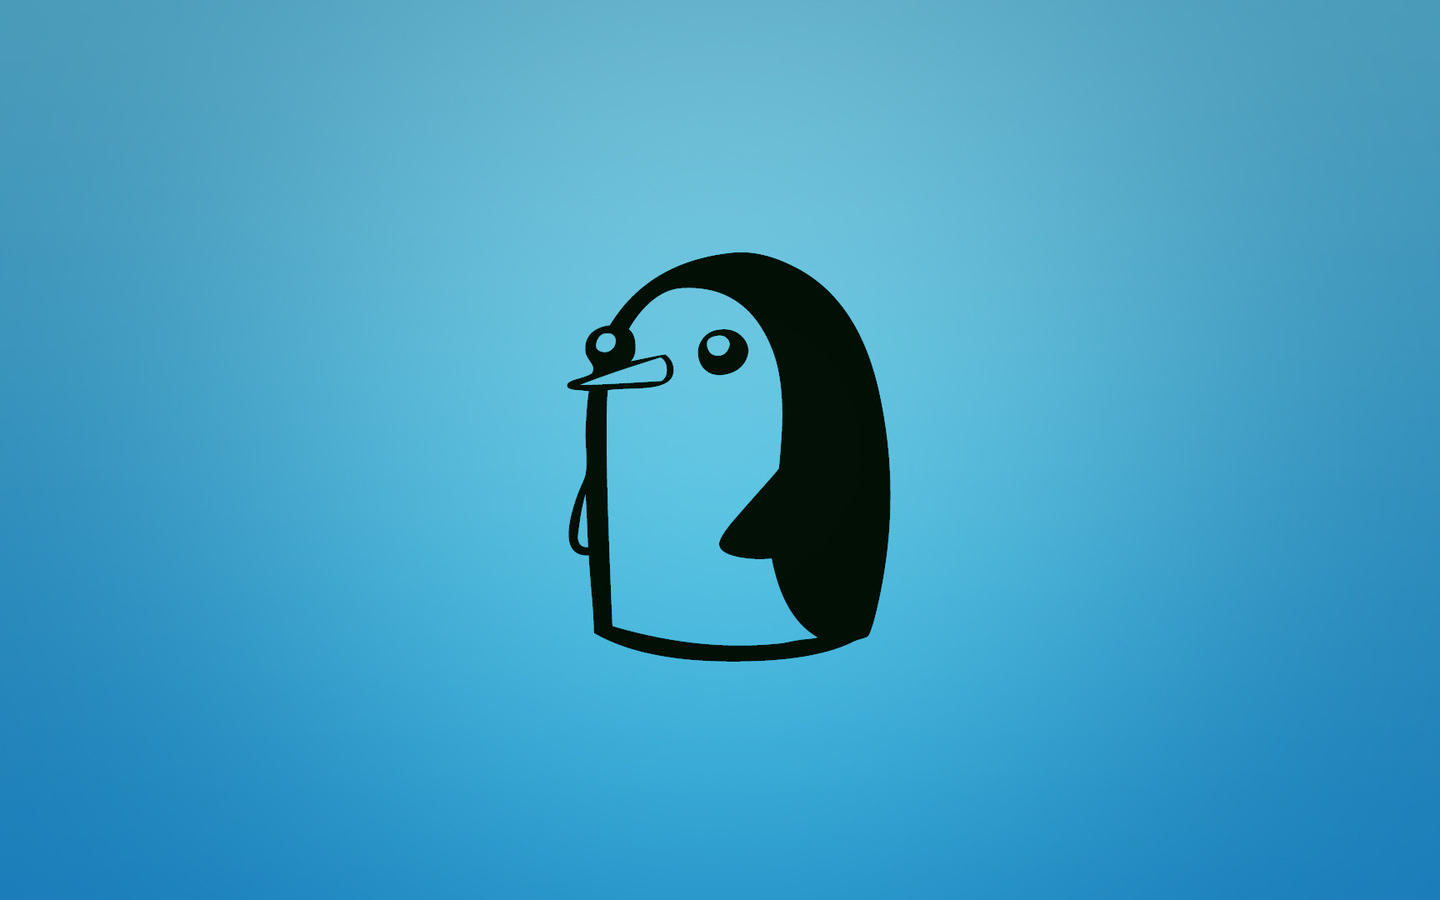 1440x900 gunter penguin at adventure time adventure time 1440x900